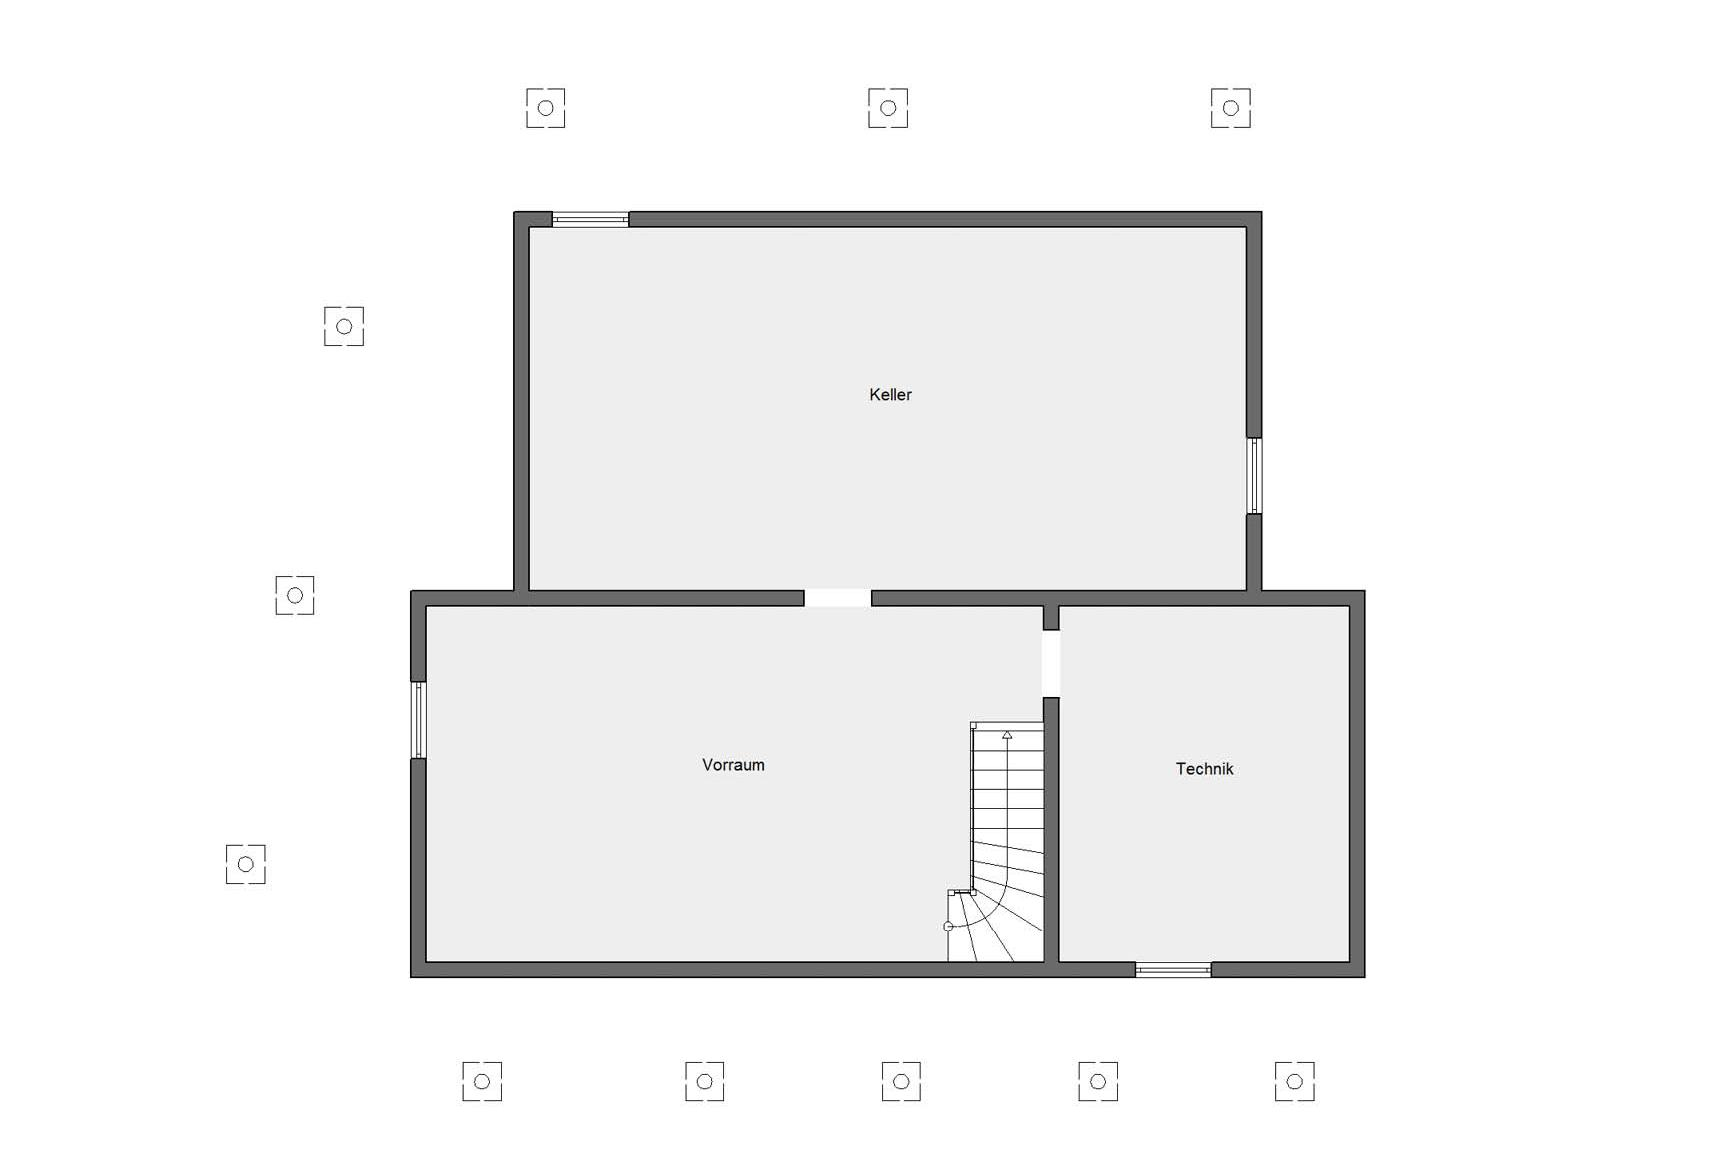 Basement plan Young Family Home 2